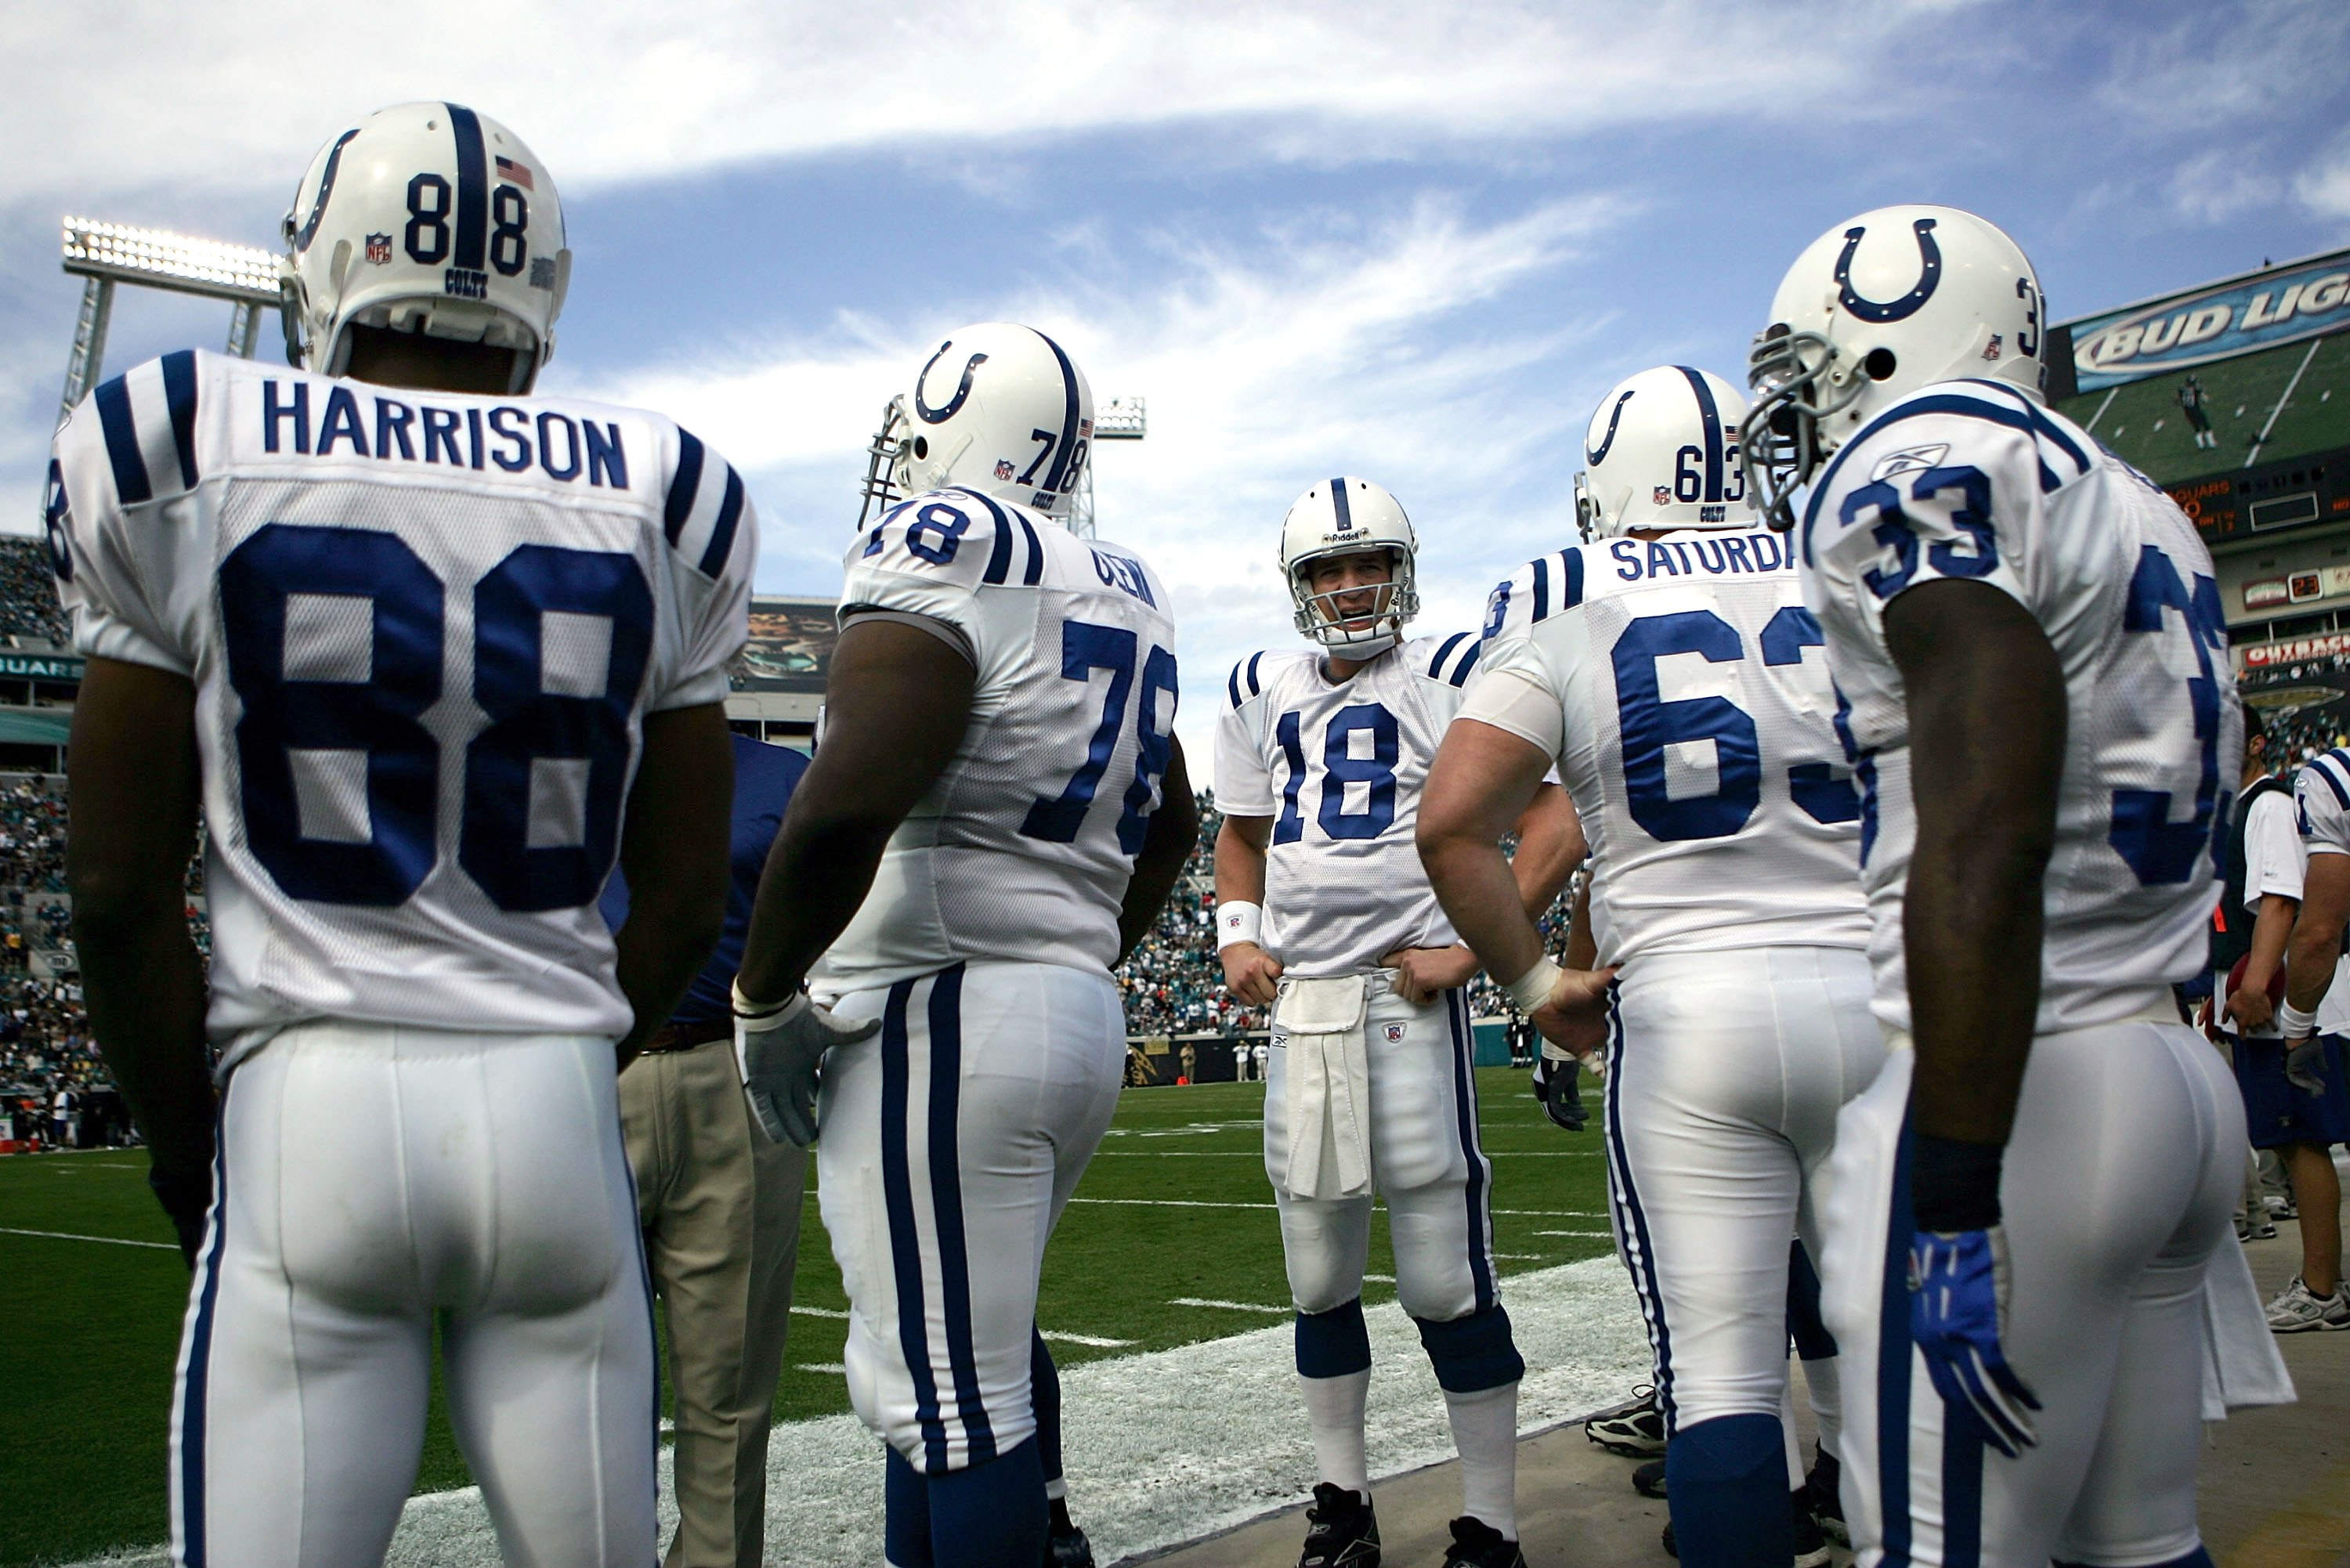 Indianapolis Colts, NFL